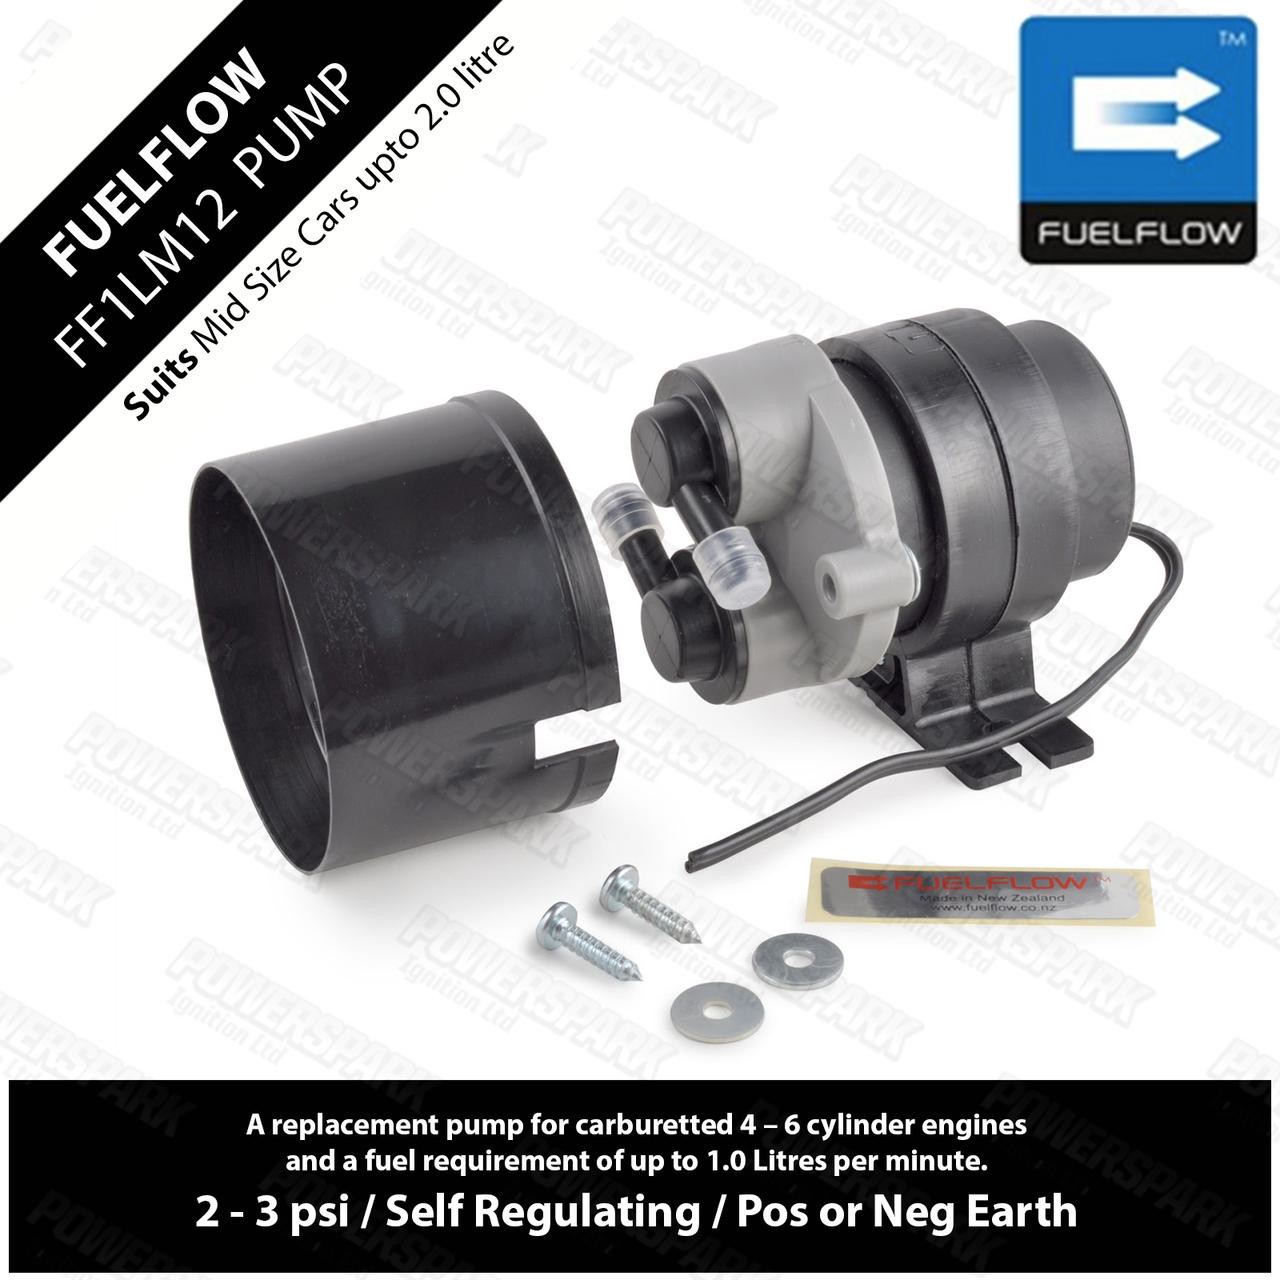 Fuel Flow FuelFlow ECCO 1LM12 SU Fuel Pump for Classic Cars up to 2.0